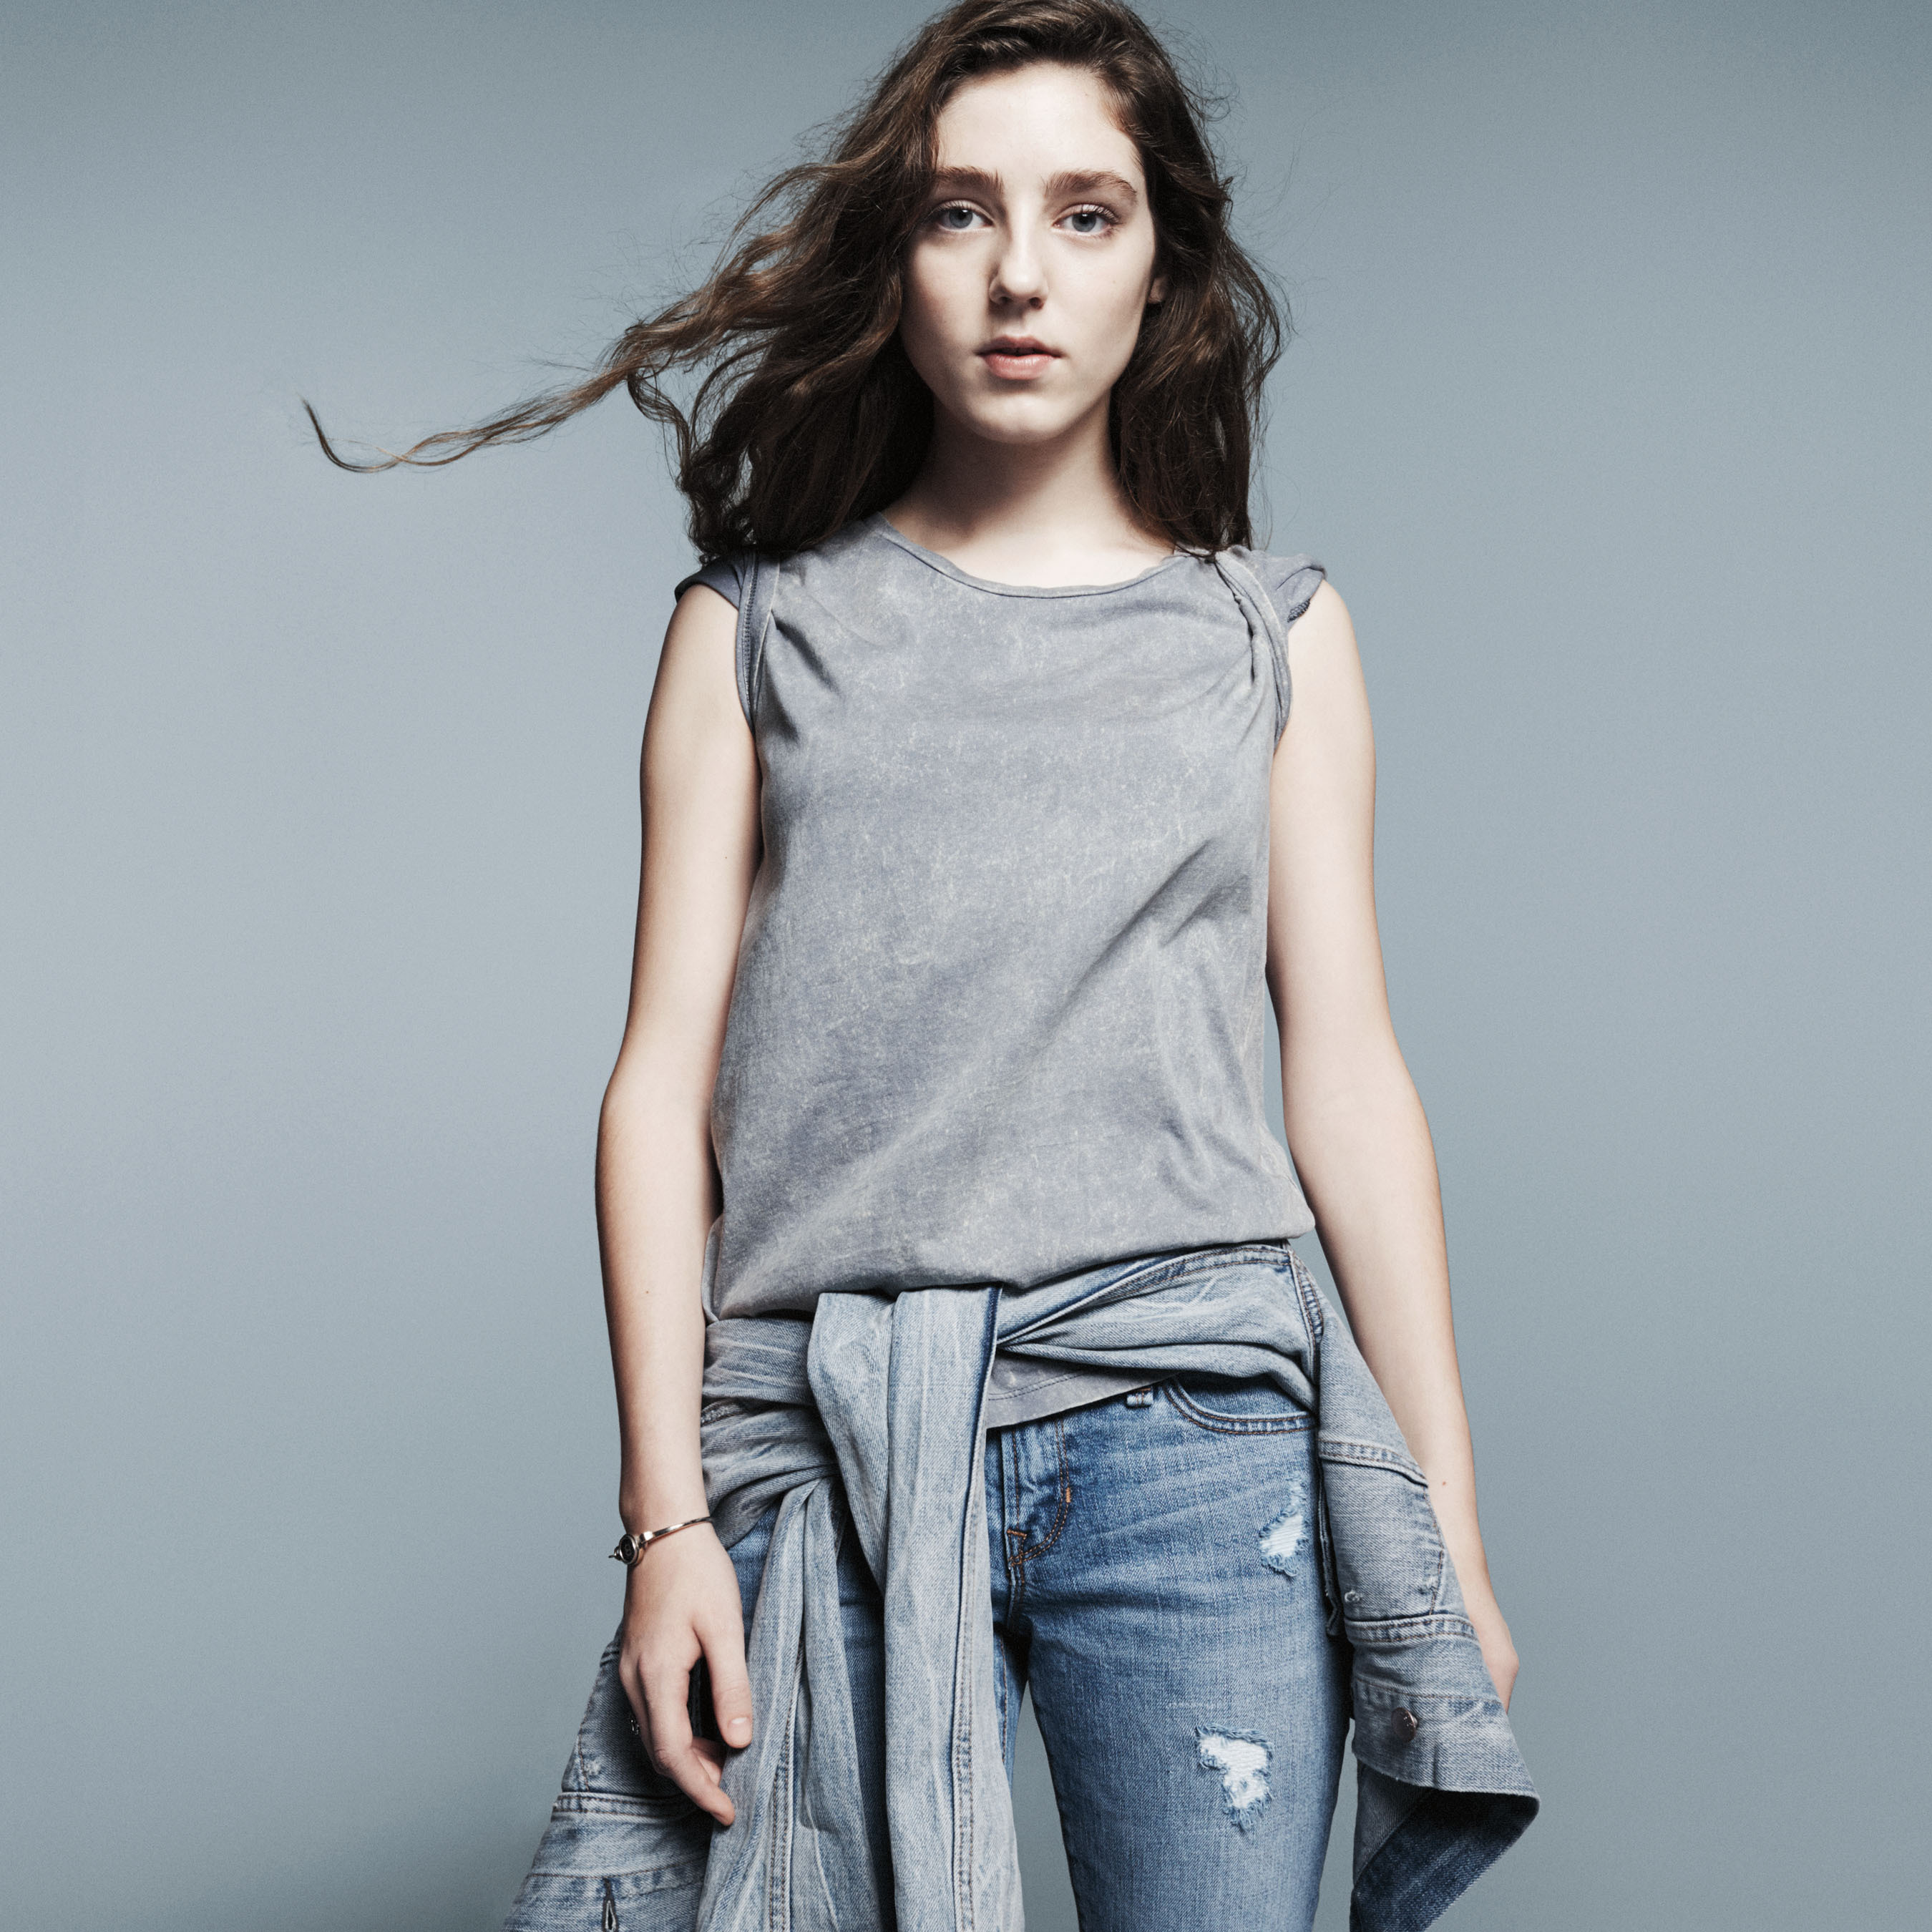 Gap Debuts 'Lived-In' Spring Campaign